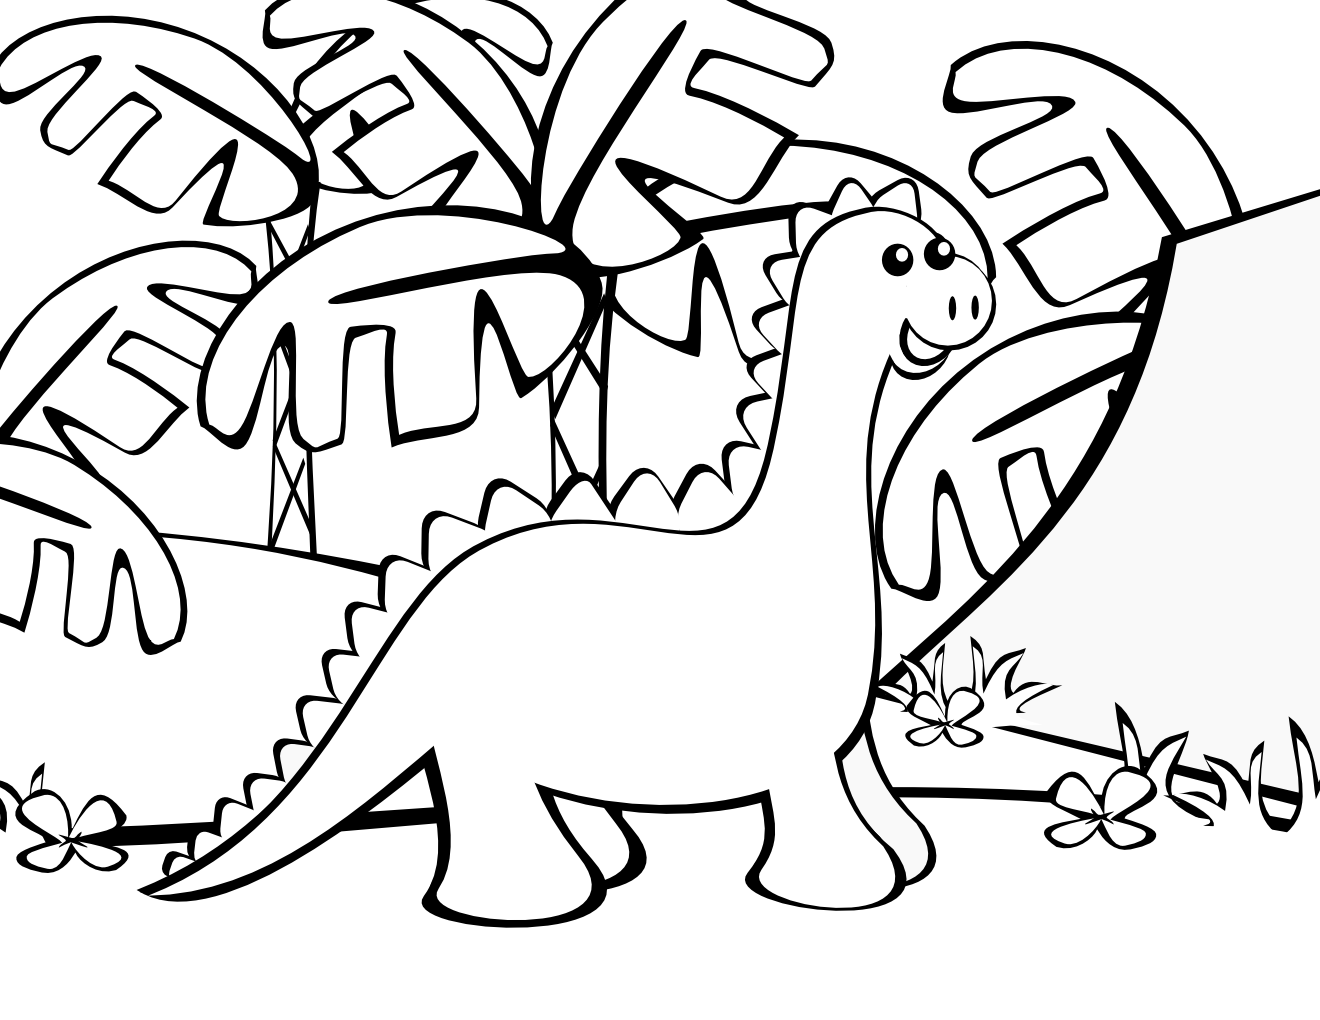 cute dinosaur coloring pages for kids | Cute Dinosaur Coloring Pages For Kids - Coloring Home